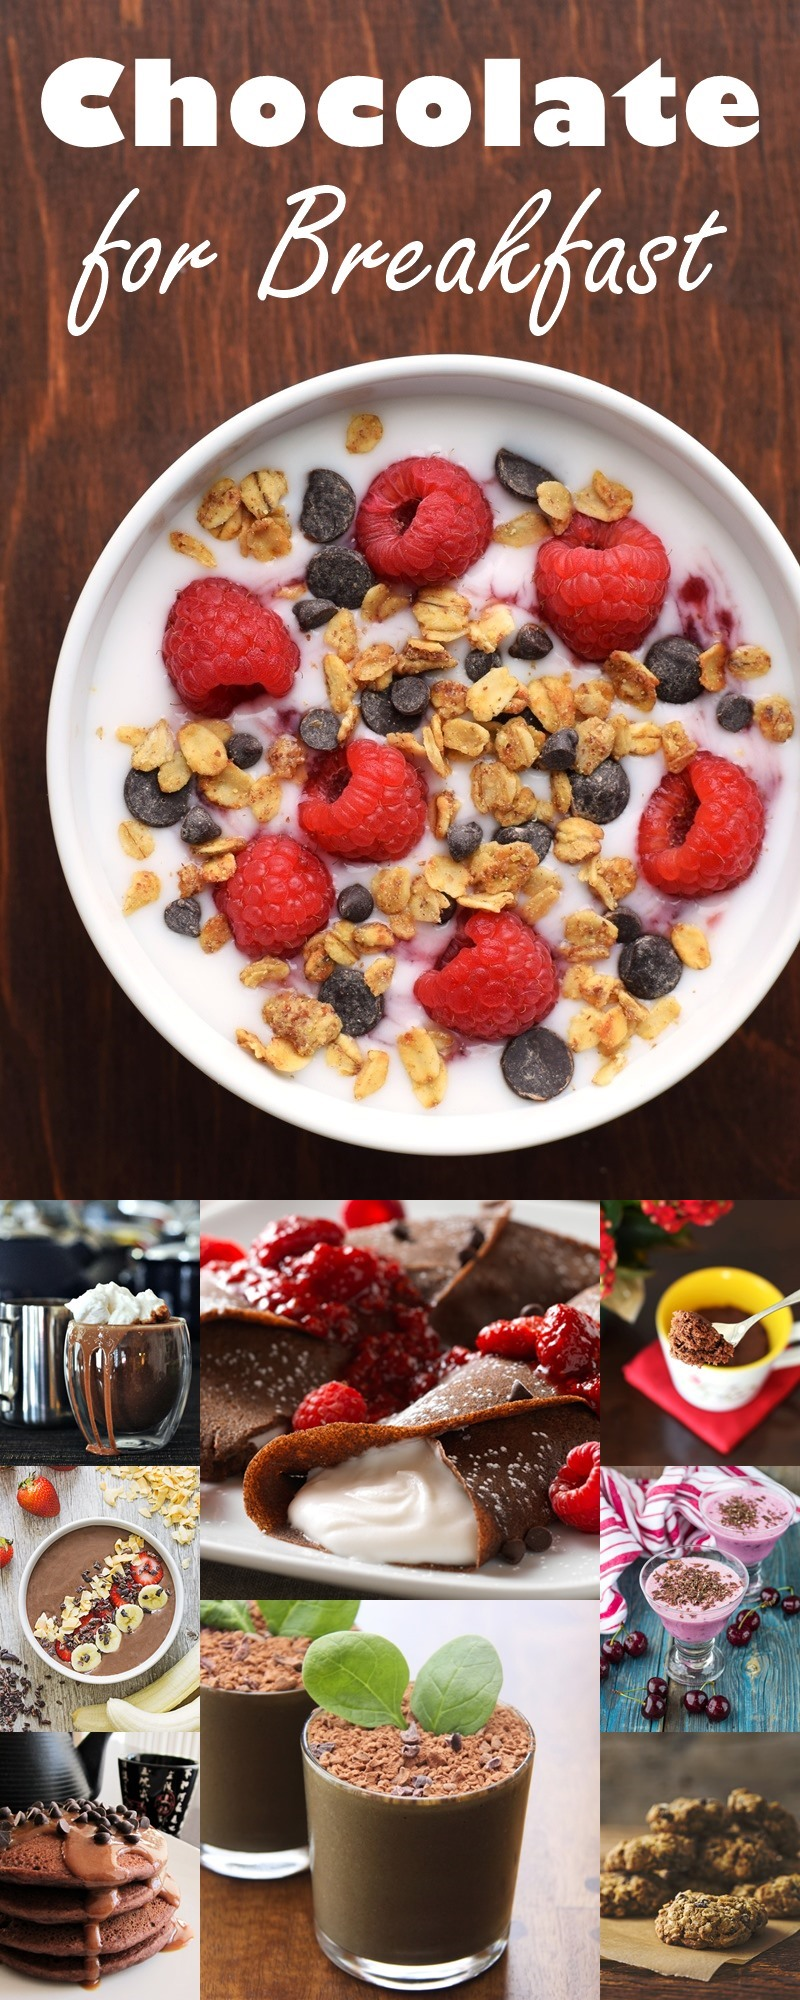 22 Chocolate Breakfast Recipes - delicious dairy-free, vegan ways to love chocolate for breakfast!